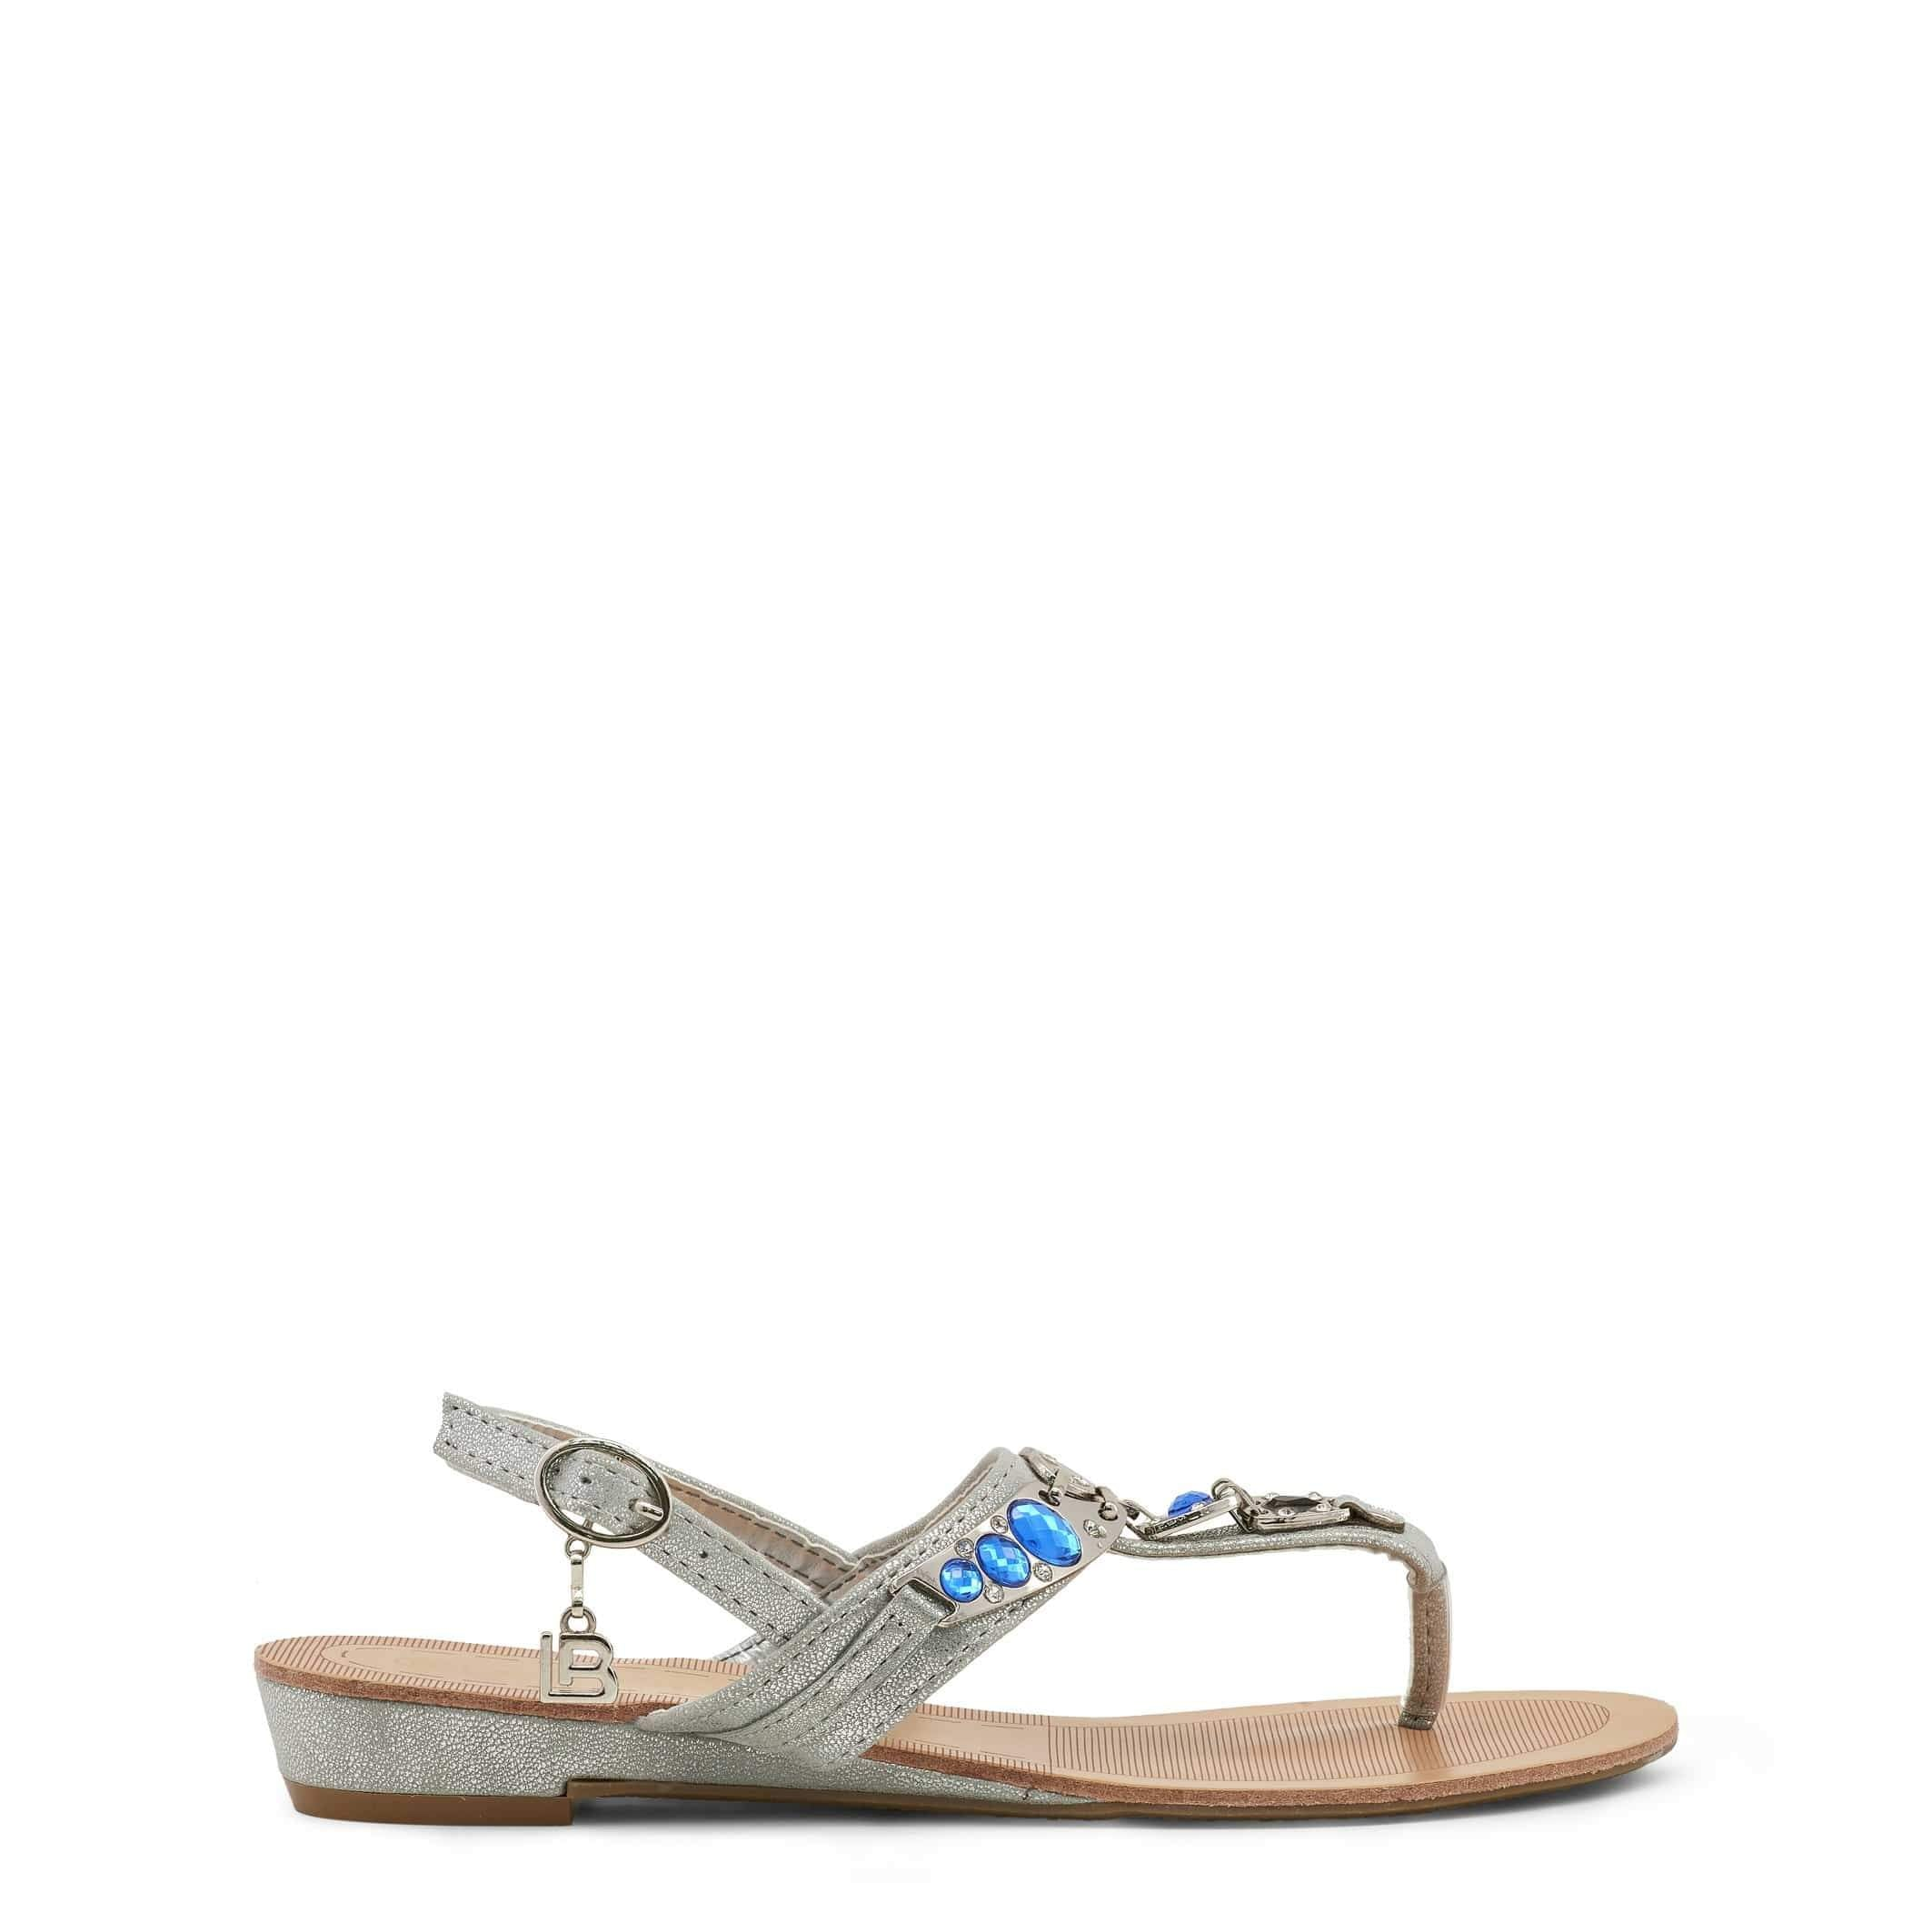 Laura Biagiotti Shoes Sandals grey / EU 36 Laura Biagiotti - 713_METAL